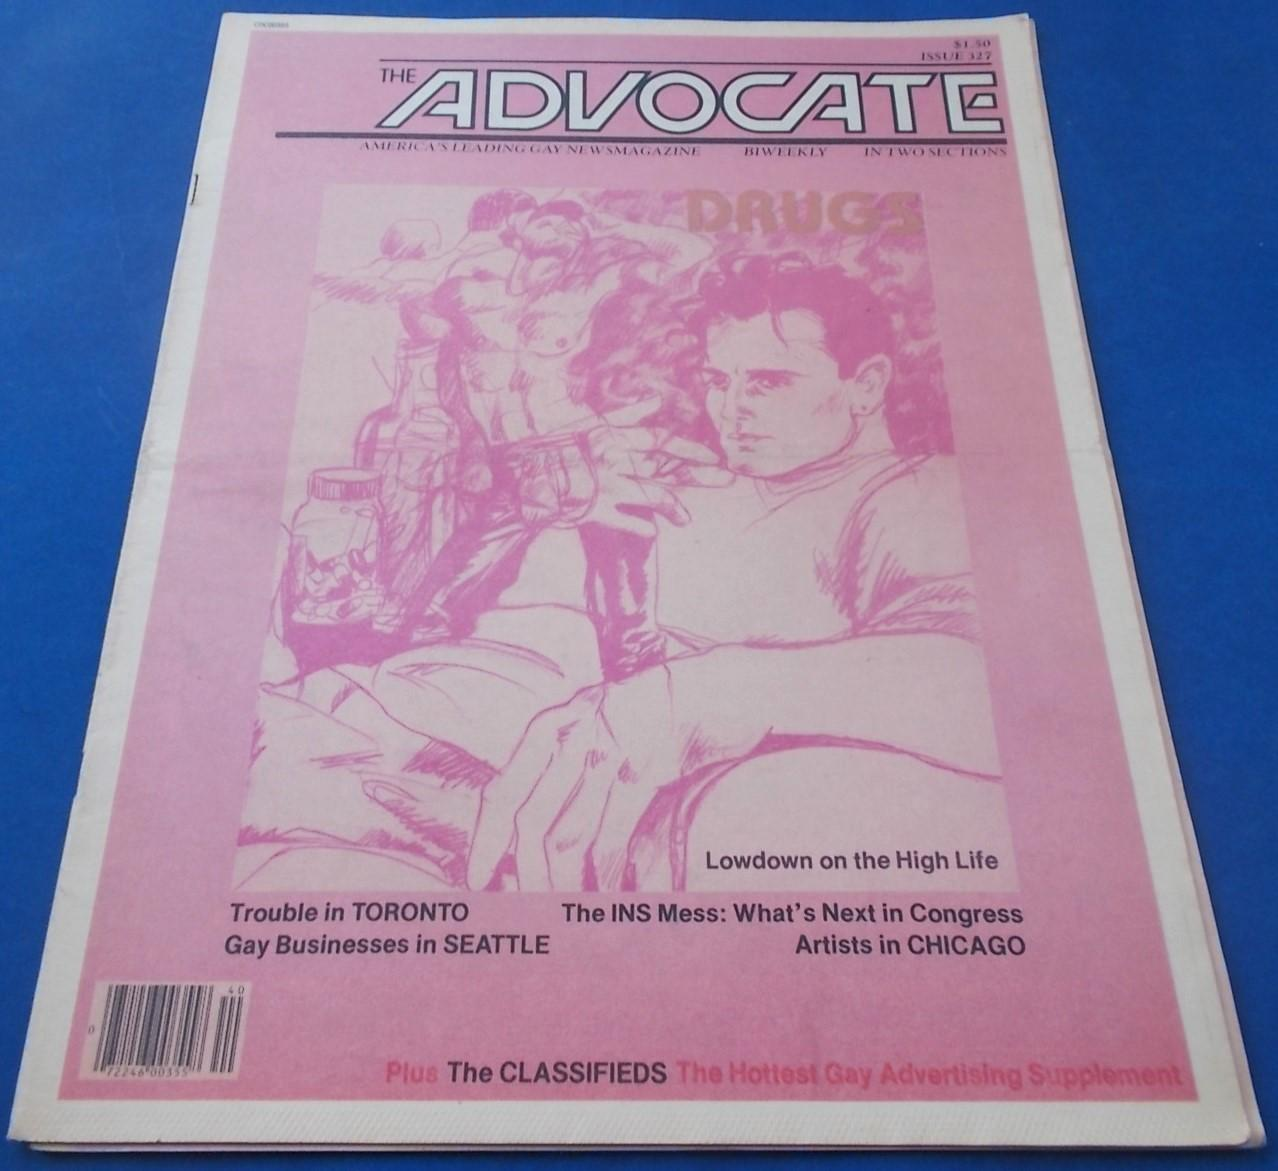 The Advocate (Issue No  327, October 1, 1981